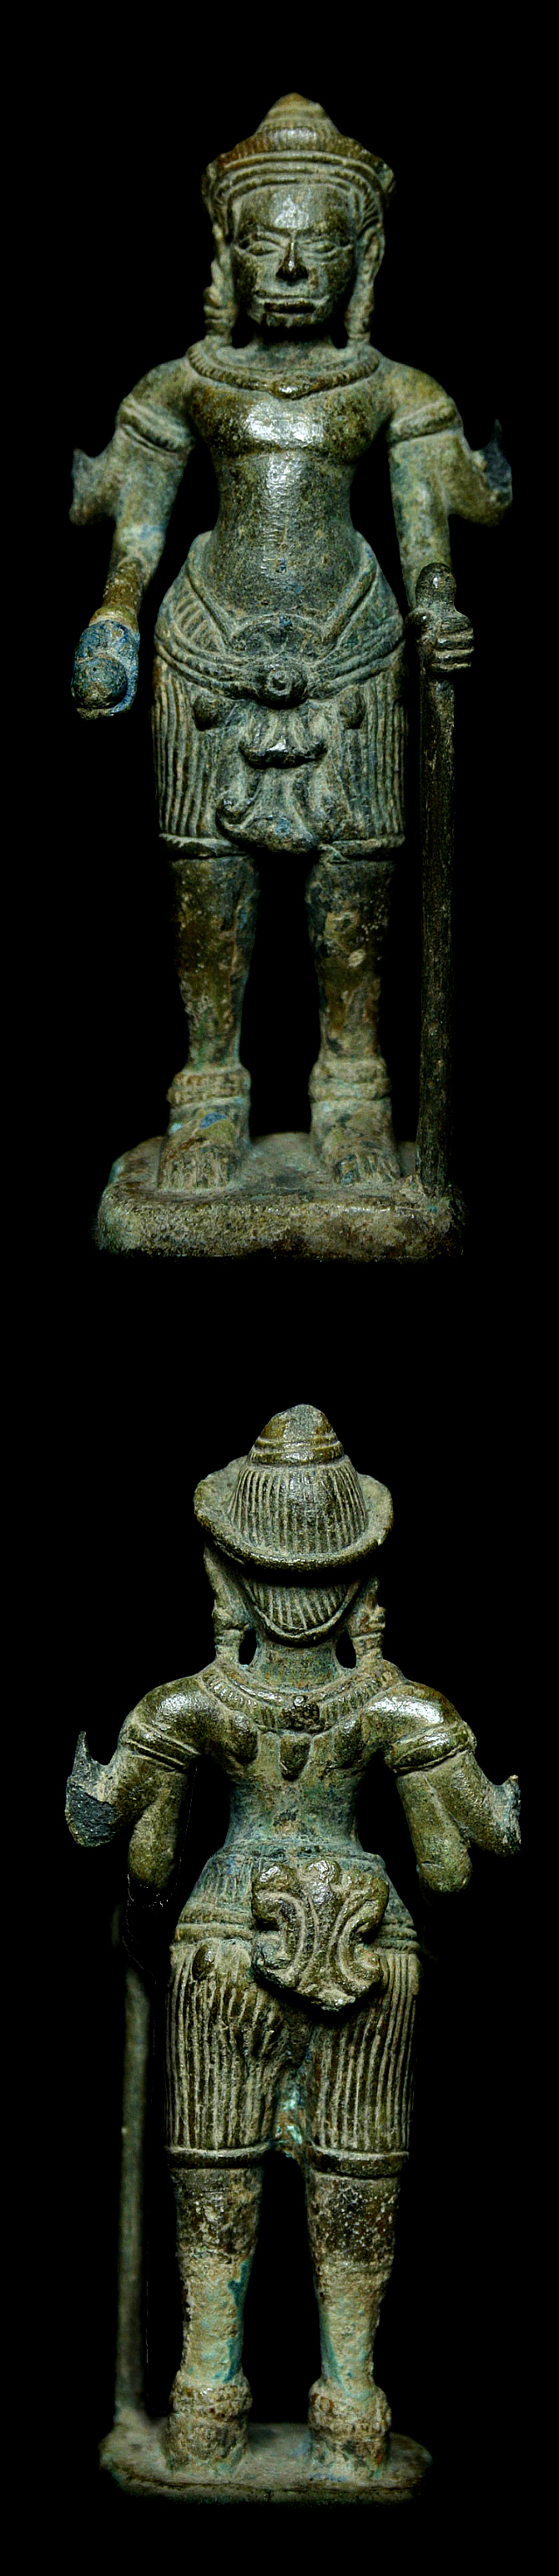 Extremely Rare 13C Khmer Sculpture #AL.027